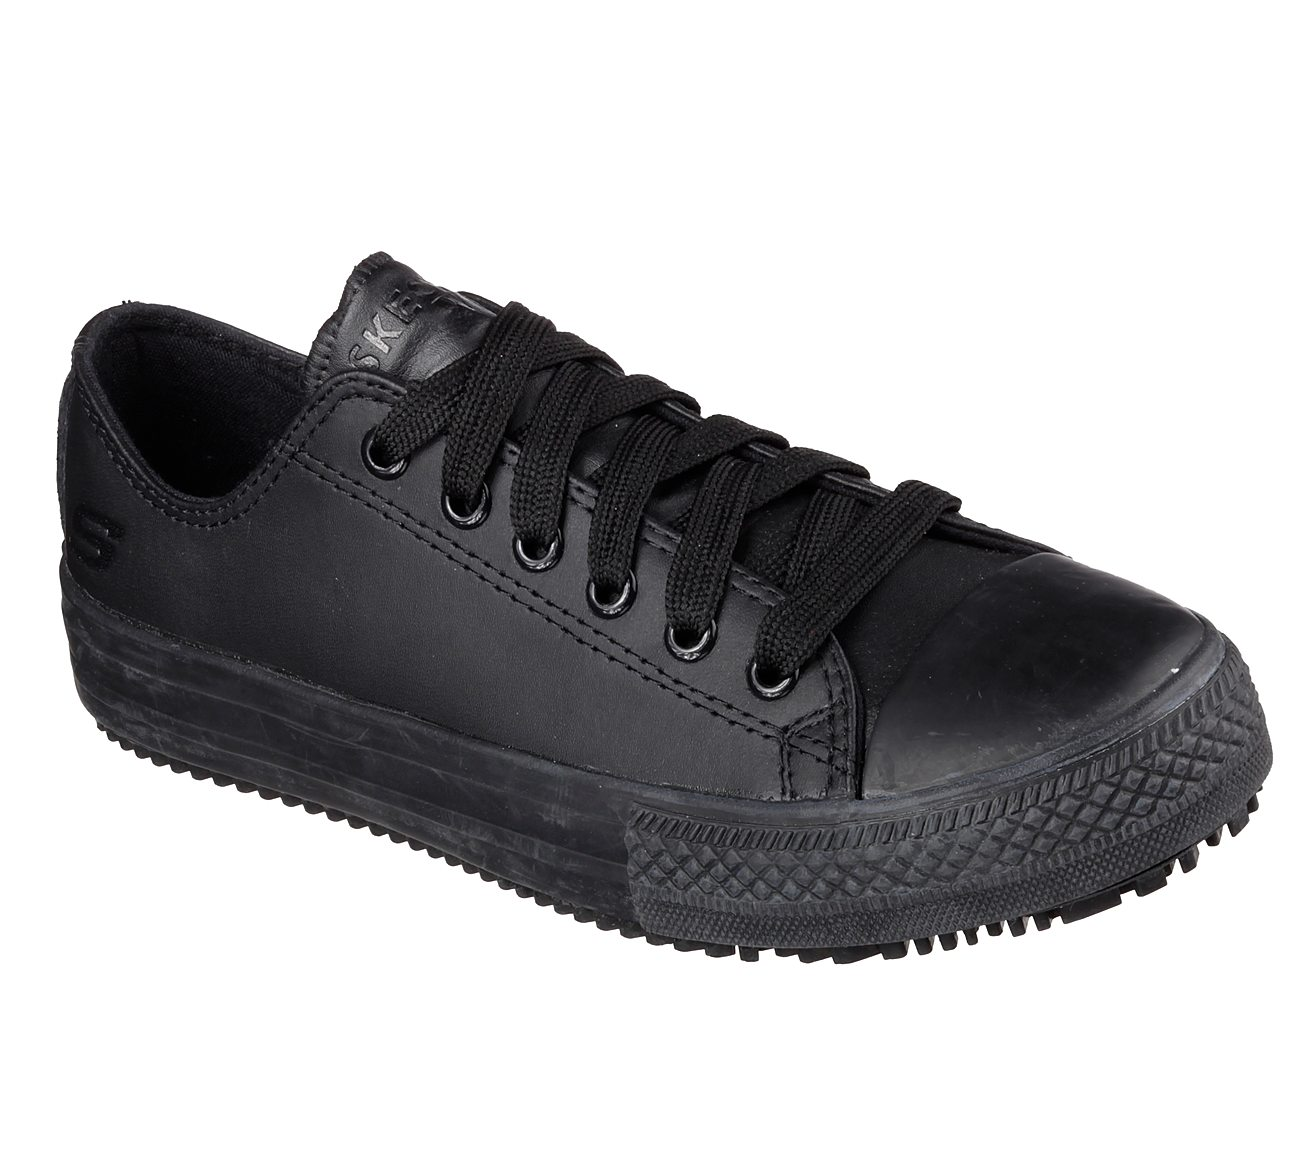 Women's Skecher's For Work 76453 Gibson-Hardwood Lace Up Work Shoes Black.